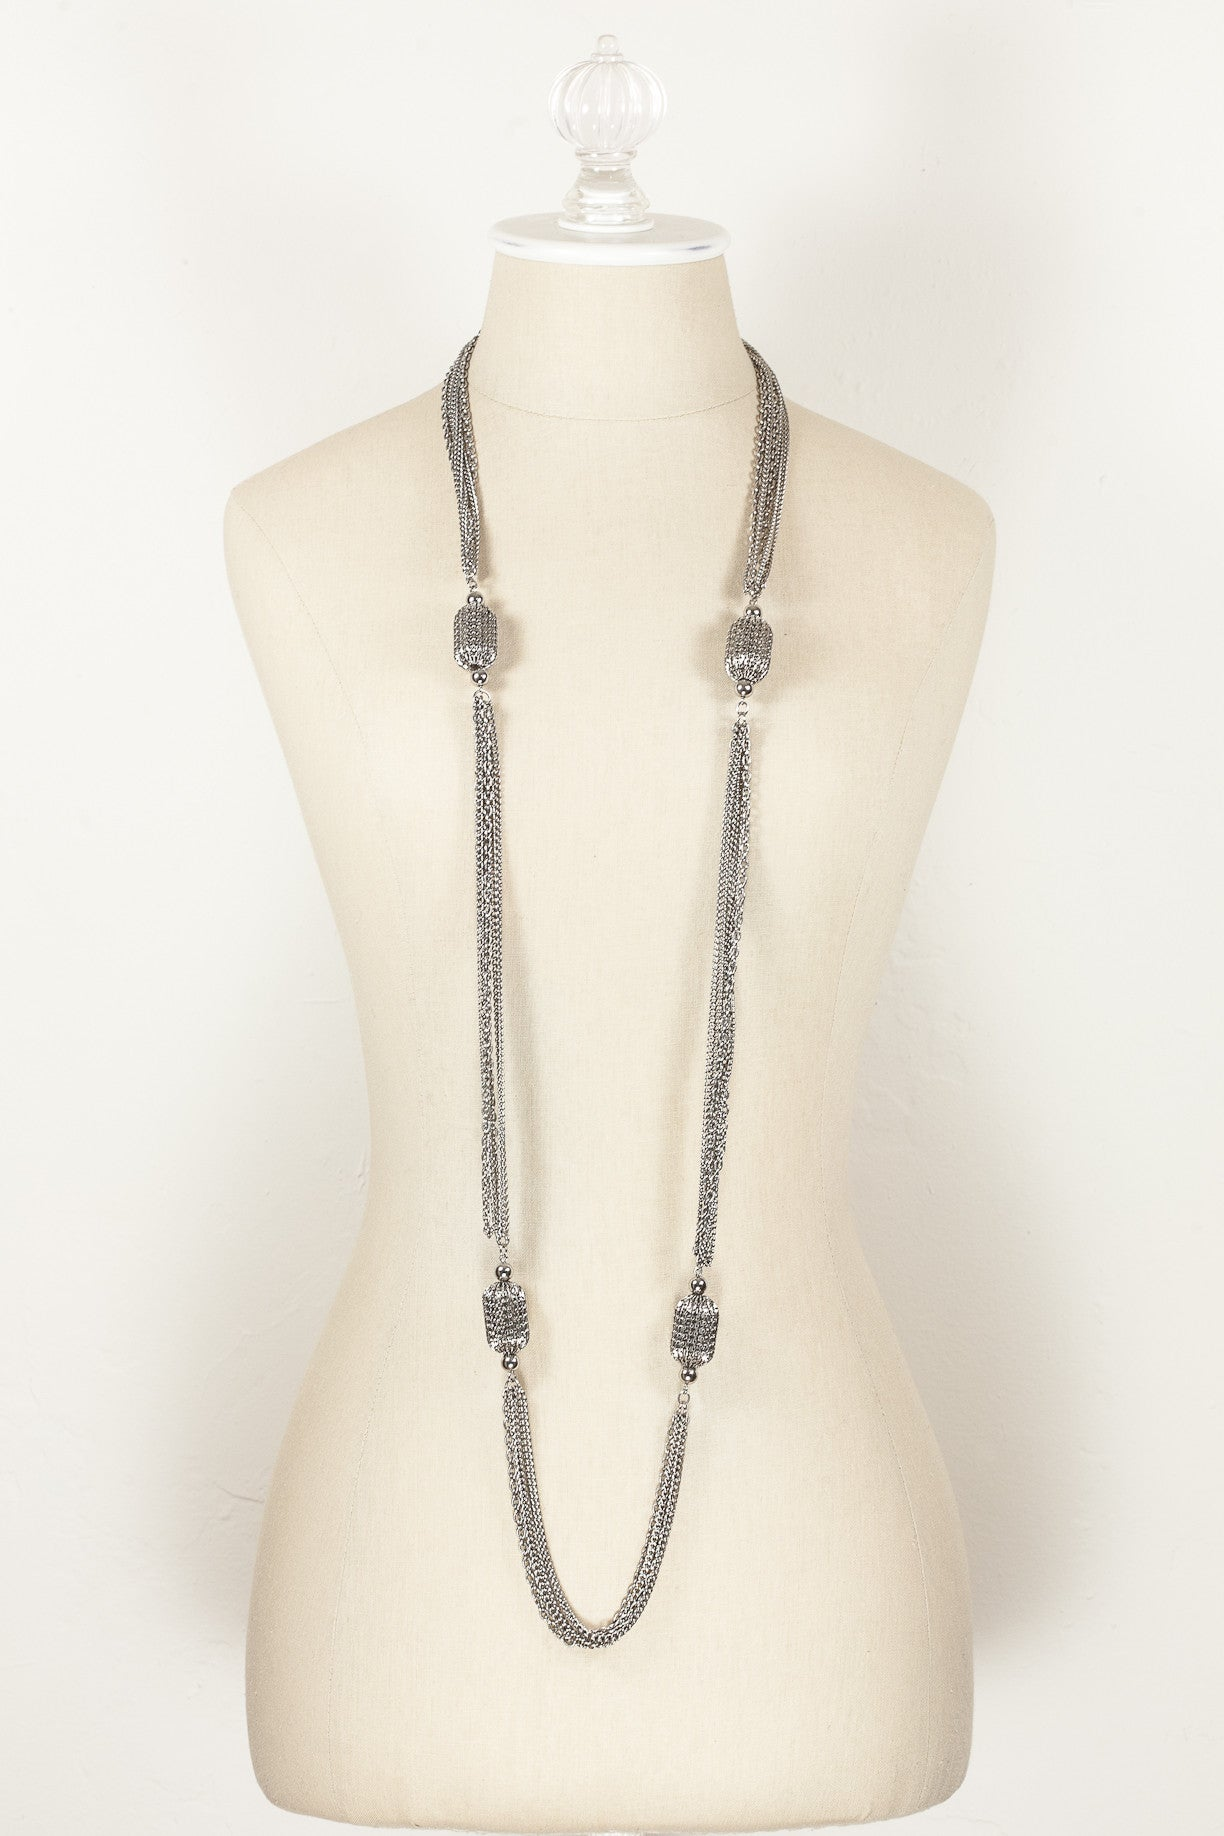 70's__Vintage__Silver Multi Chain Bead Necklace